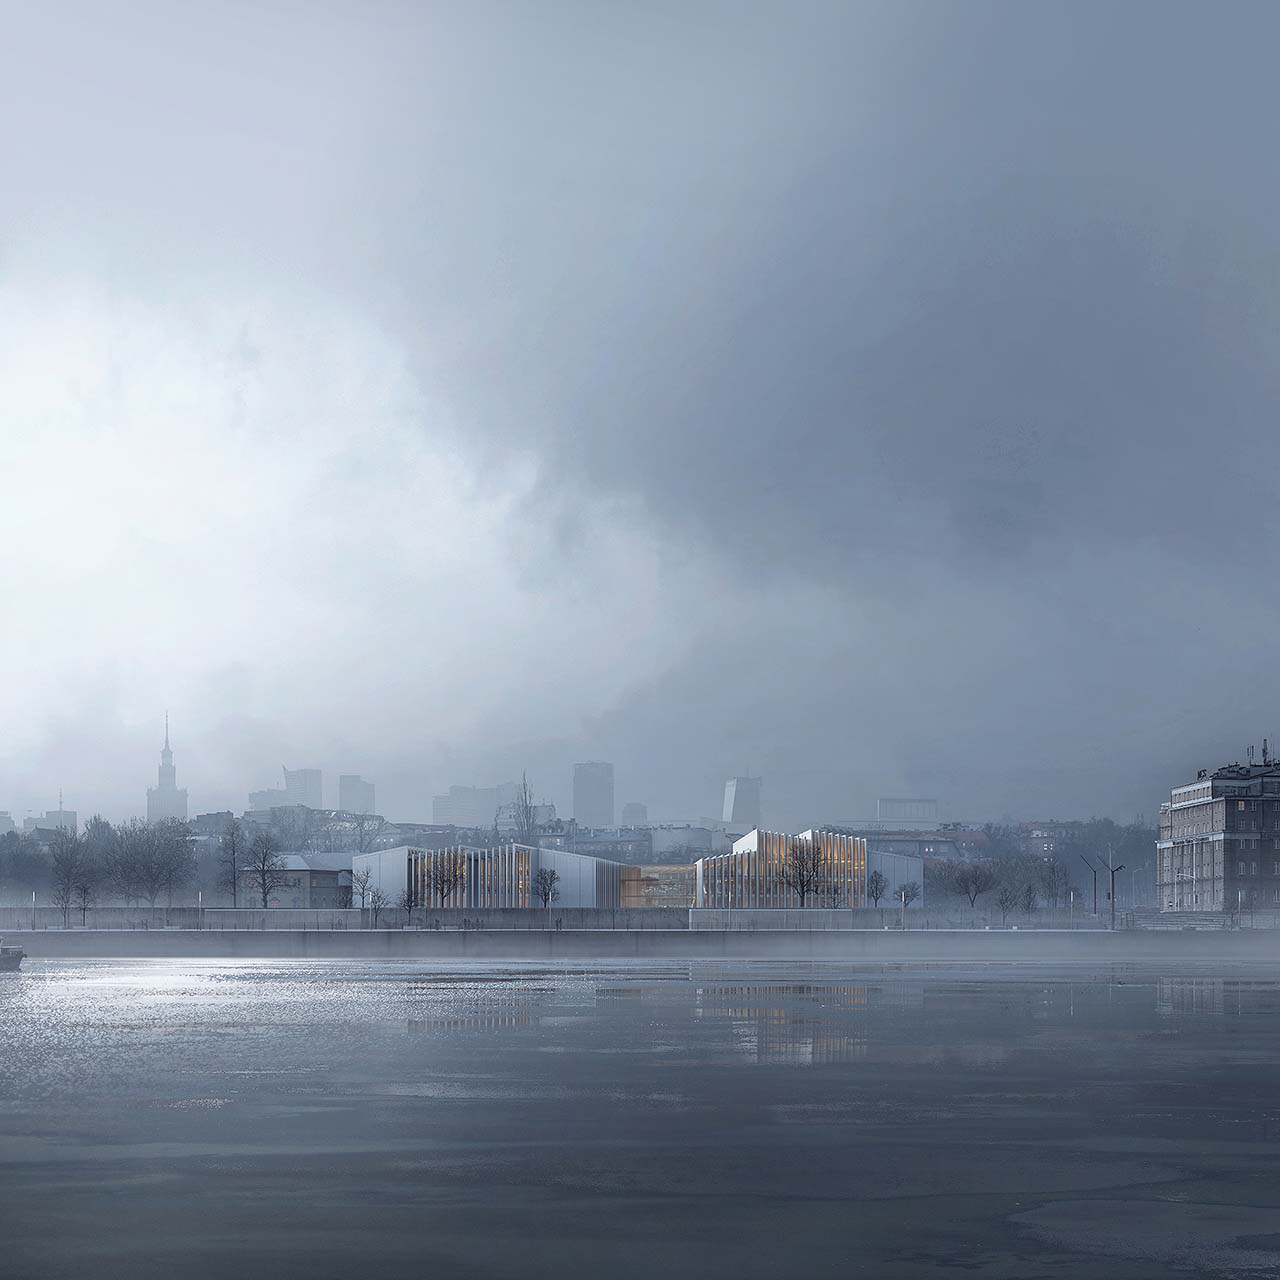 Foggy architectural rendering: white university building reflected in frozen river